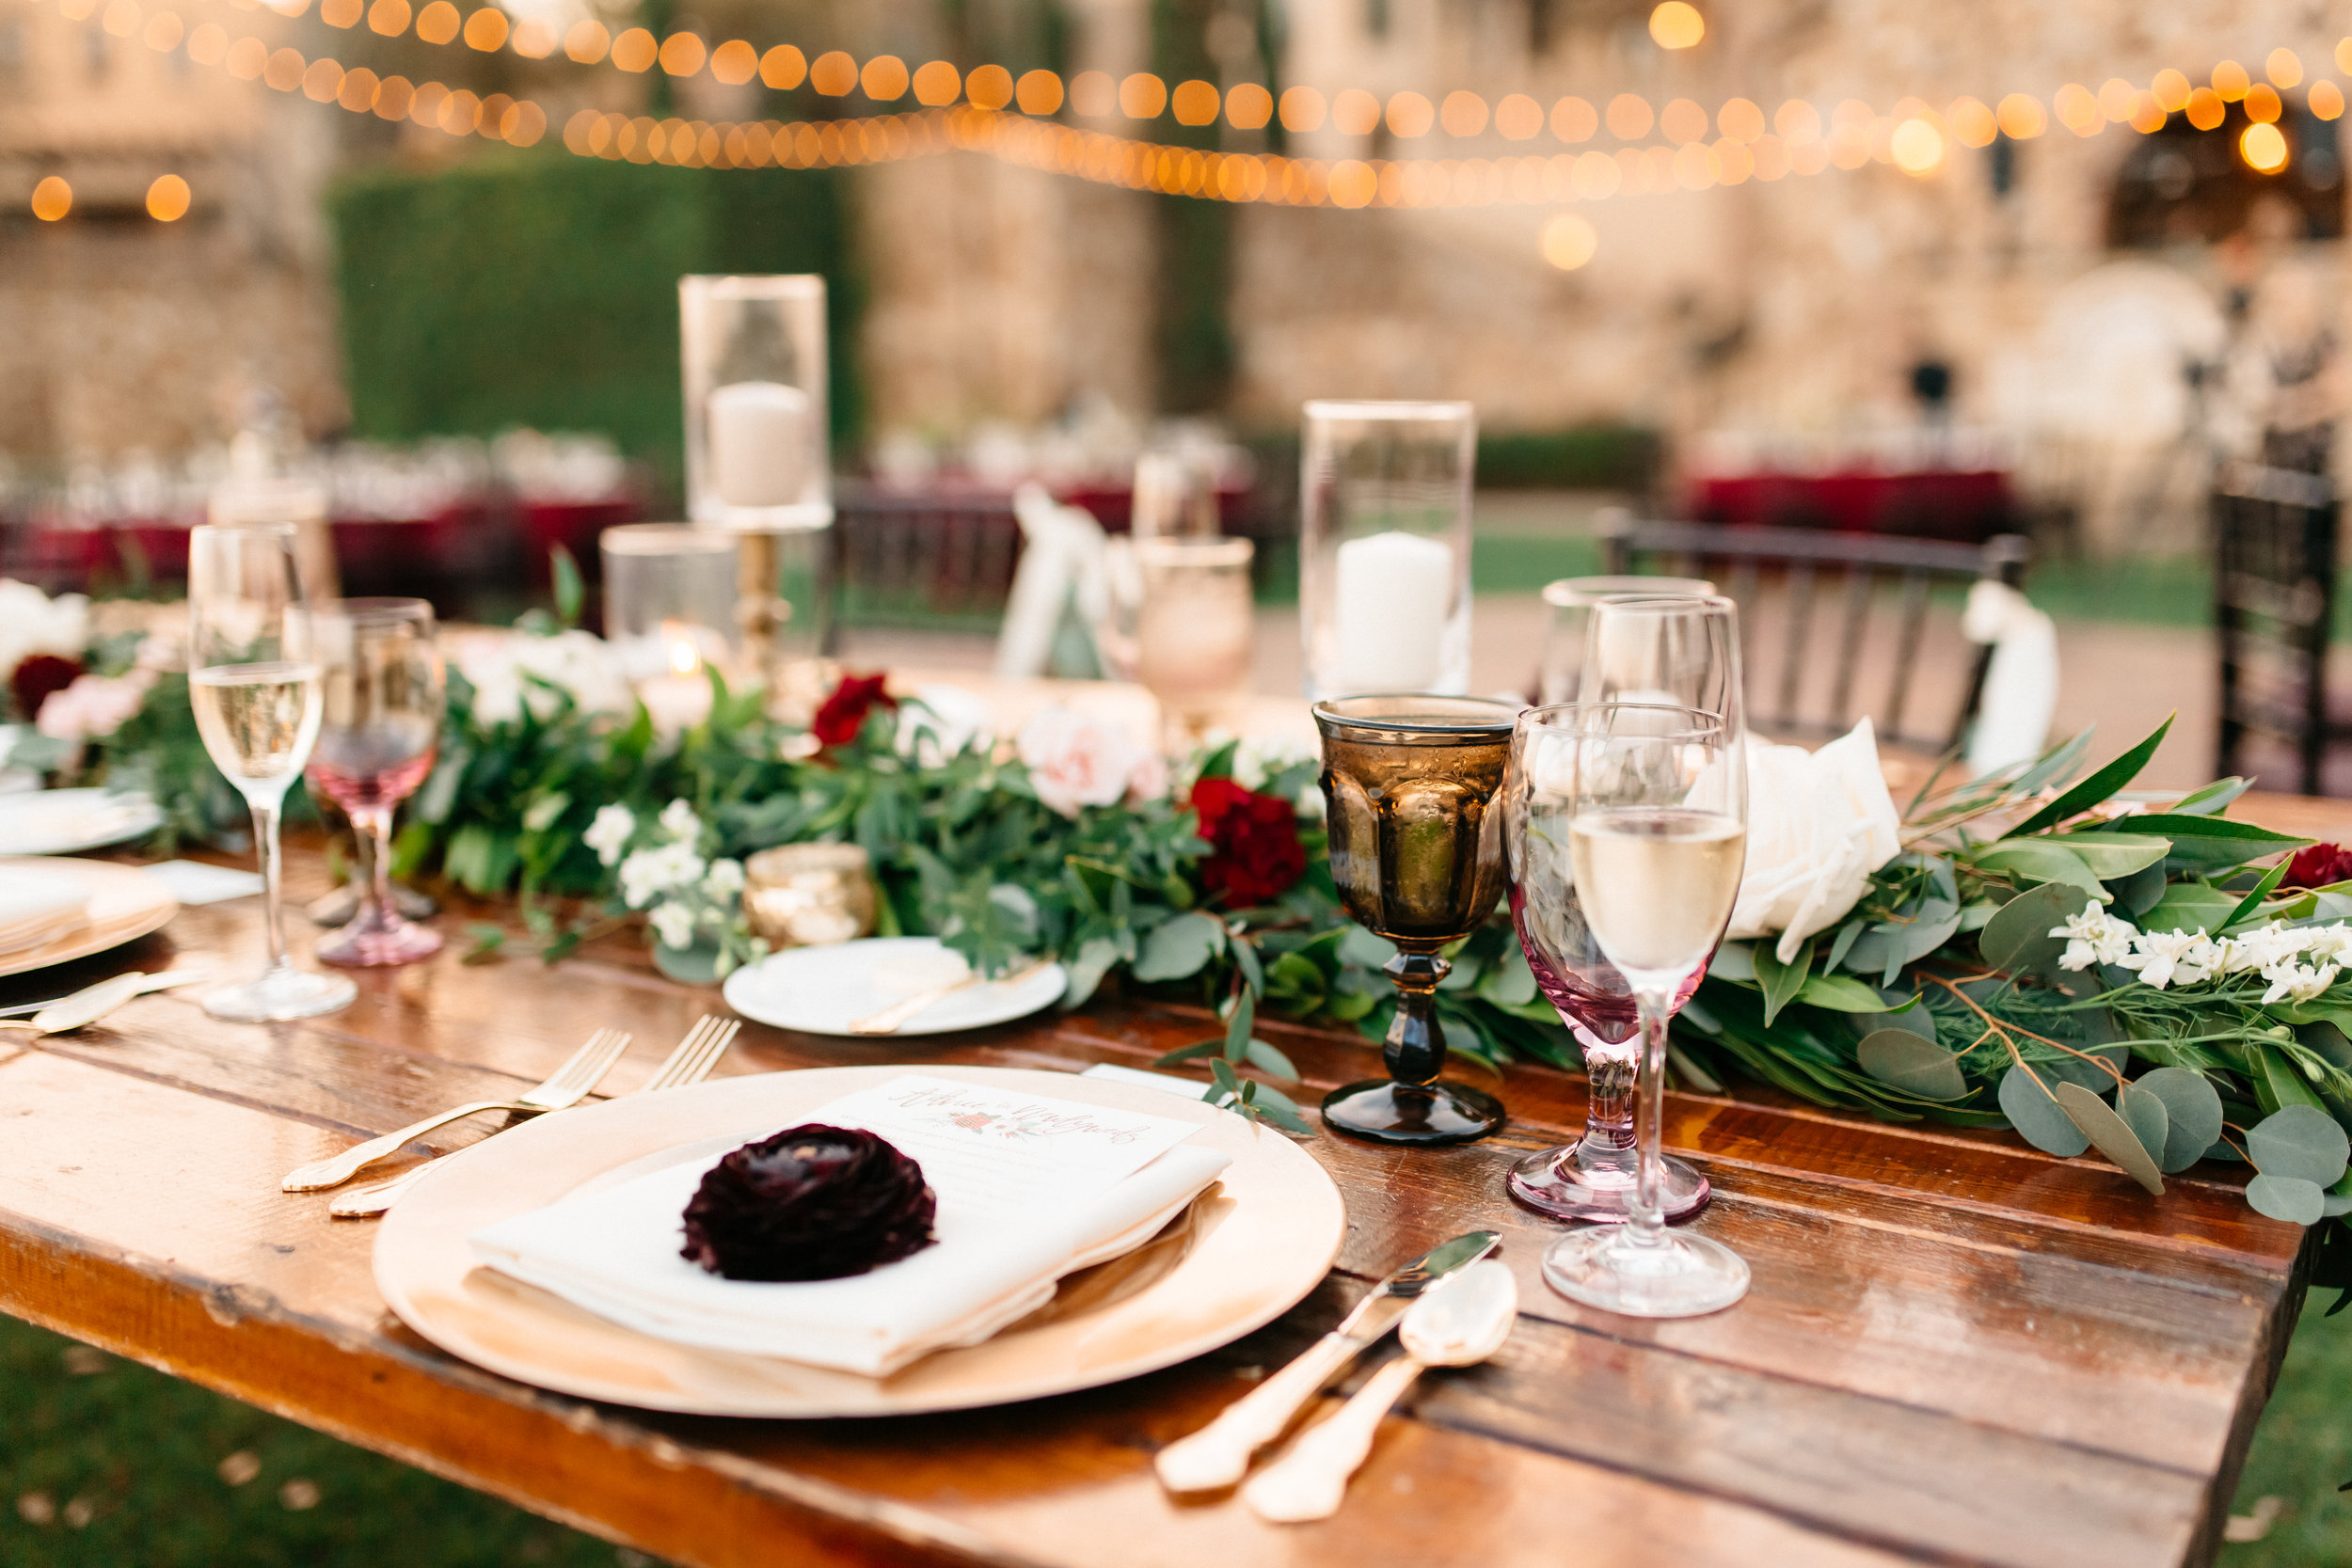 Romantic reception with larger wooden farm tables, garlands filled with roses and candles